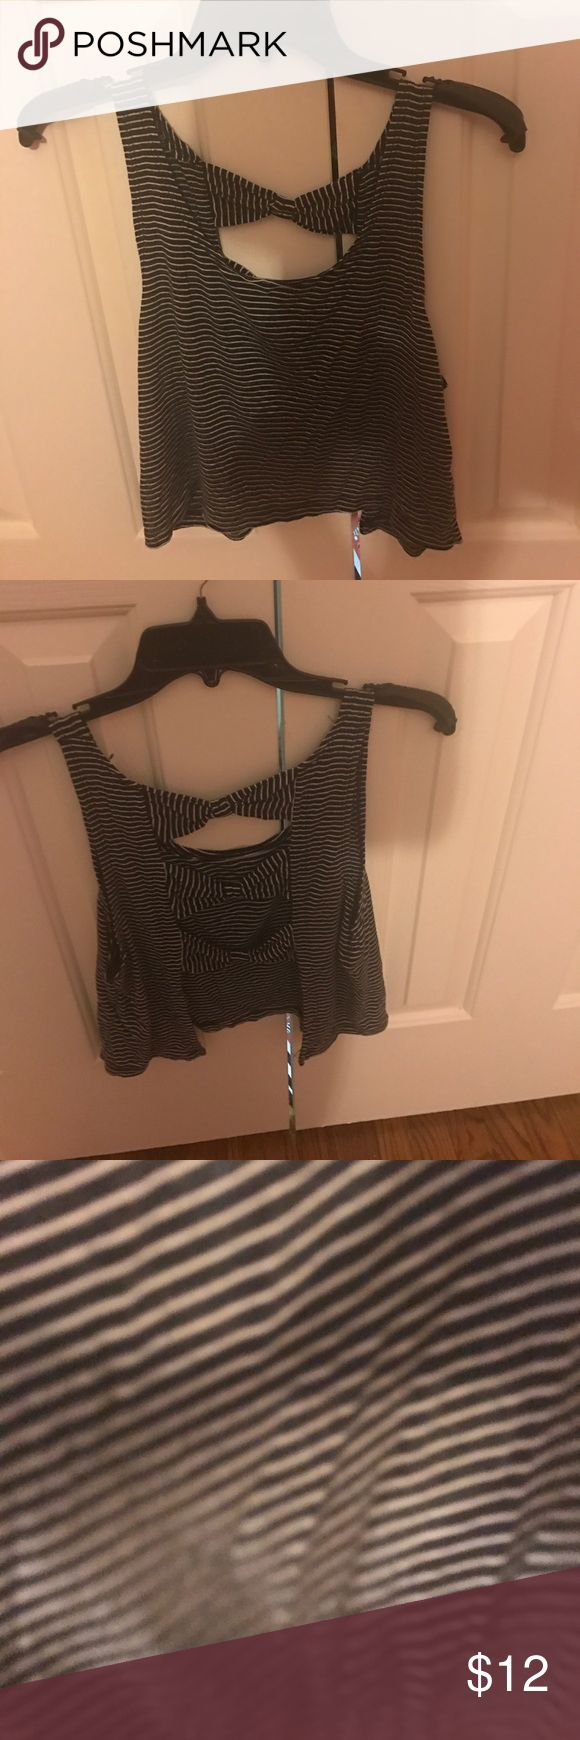 Brandy Melville bow back tank Brandy Melville navy & white stripe tank. Flowy one size. Good condition! I negotiate prices! Brandy Melville Tops Crop Tops